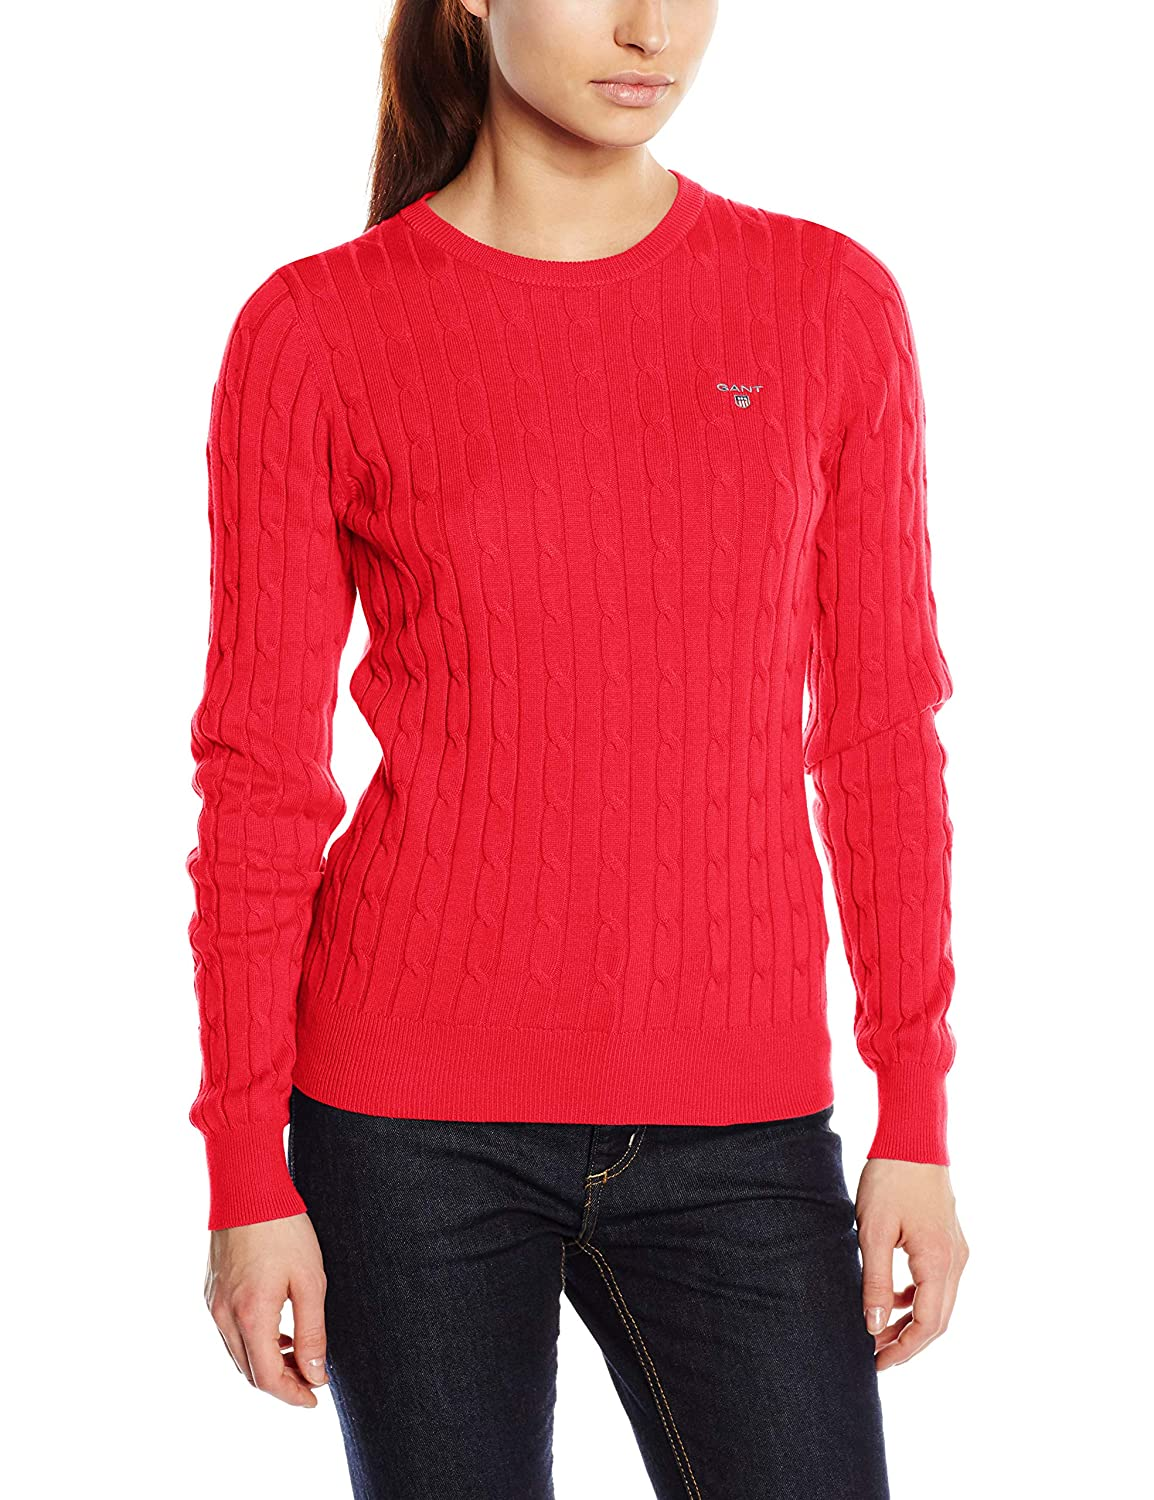 XX-Large Watermelon 648 Red GANT Womens Stretch Cotton Cable Crew Jumper